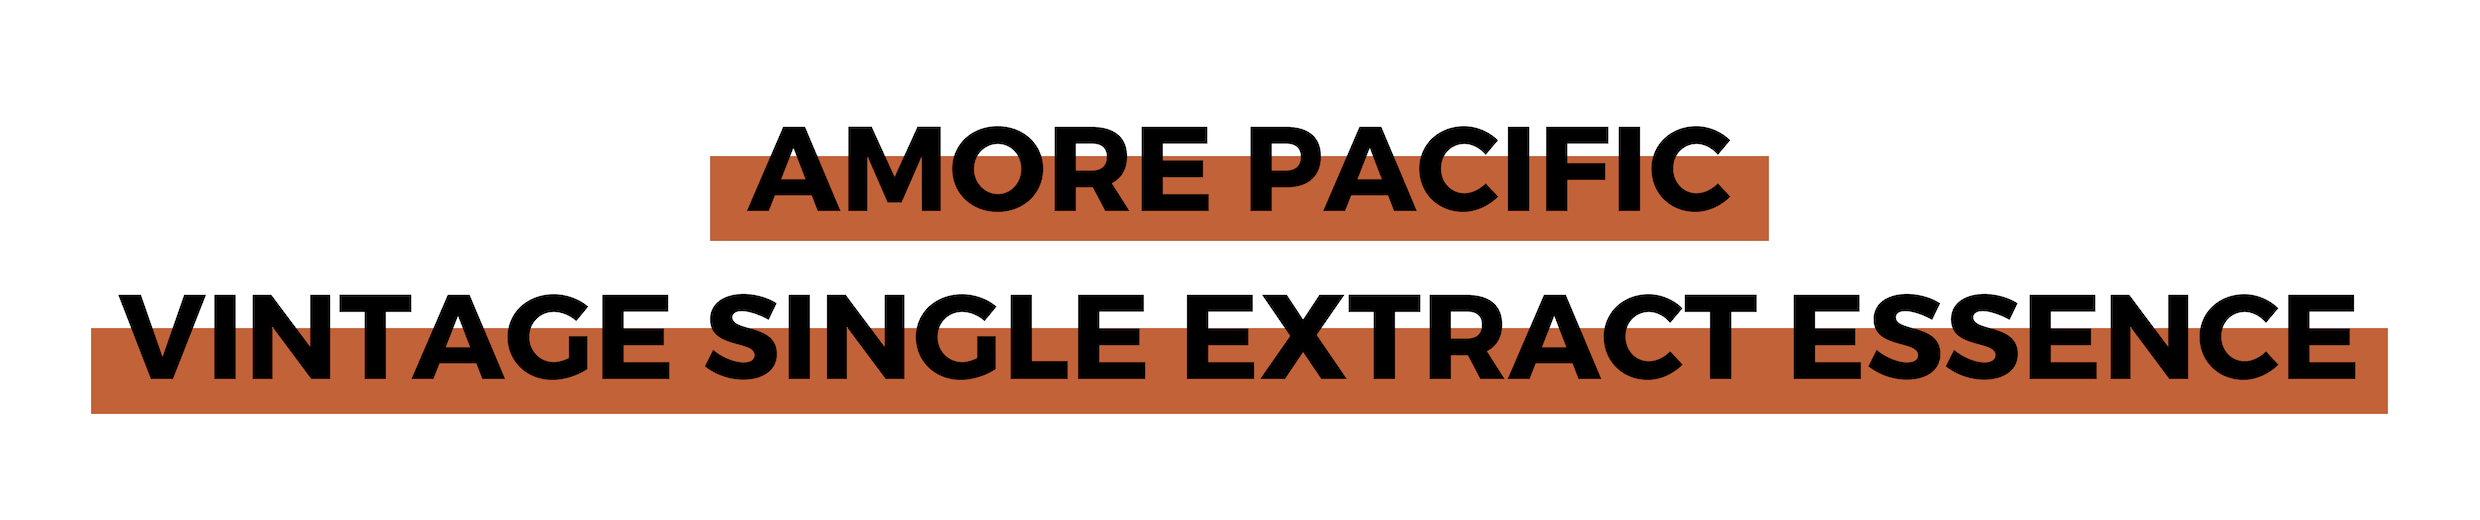 AMORE PACIFIC VINTAGE SINGLE EXTRACT ESSENCE.png